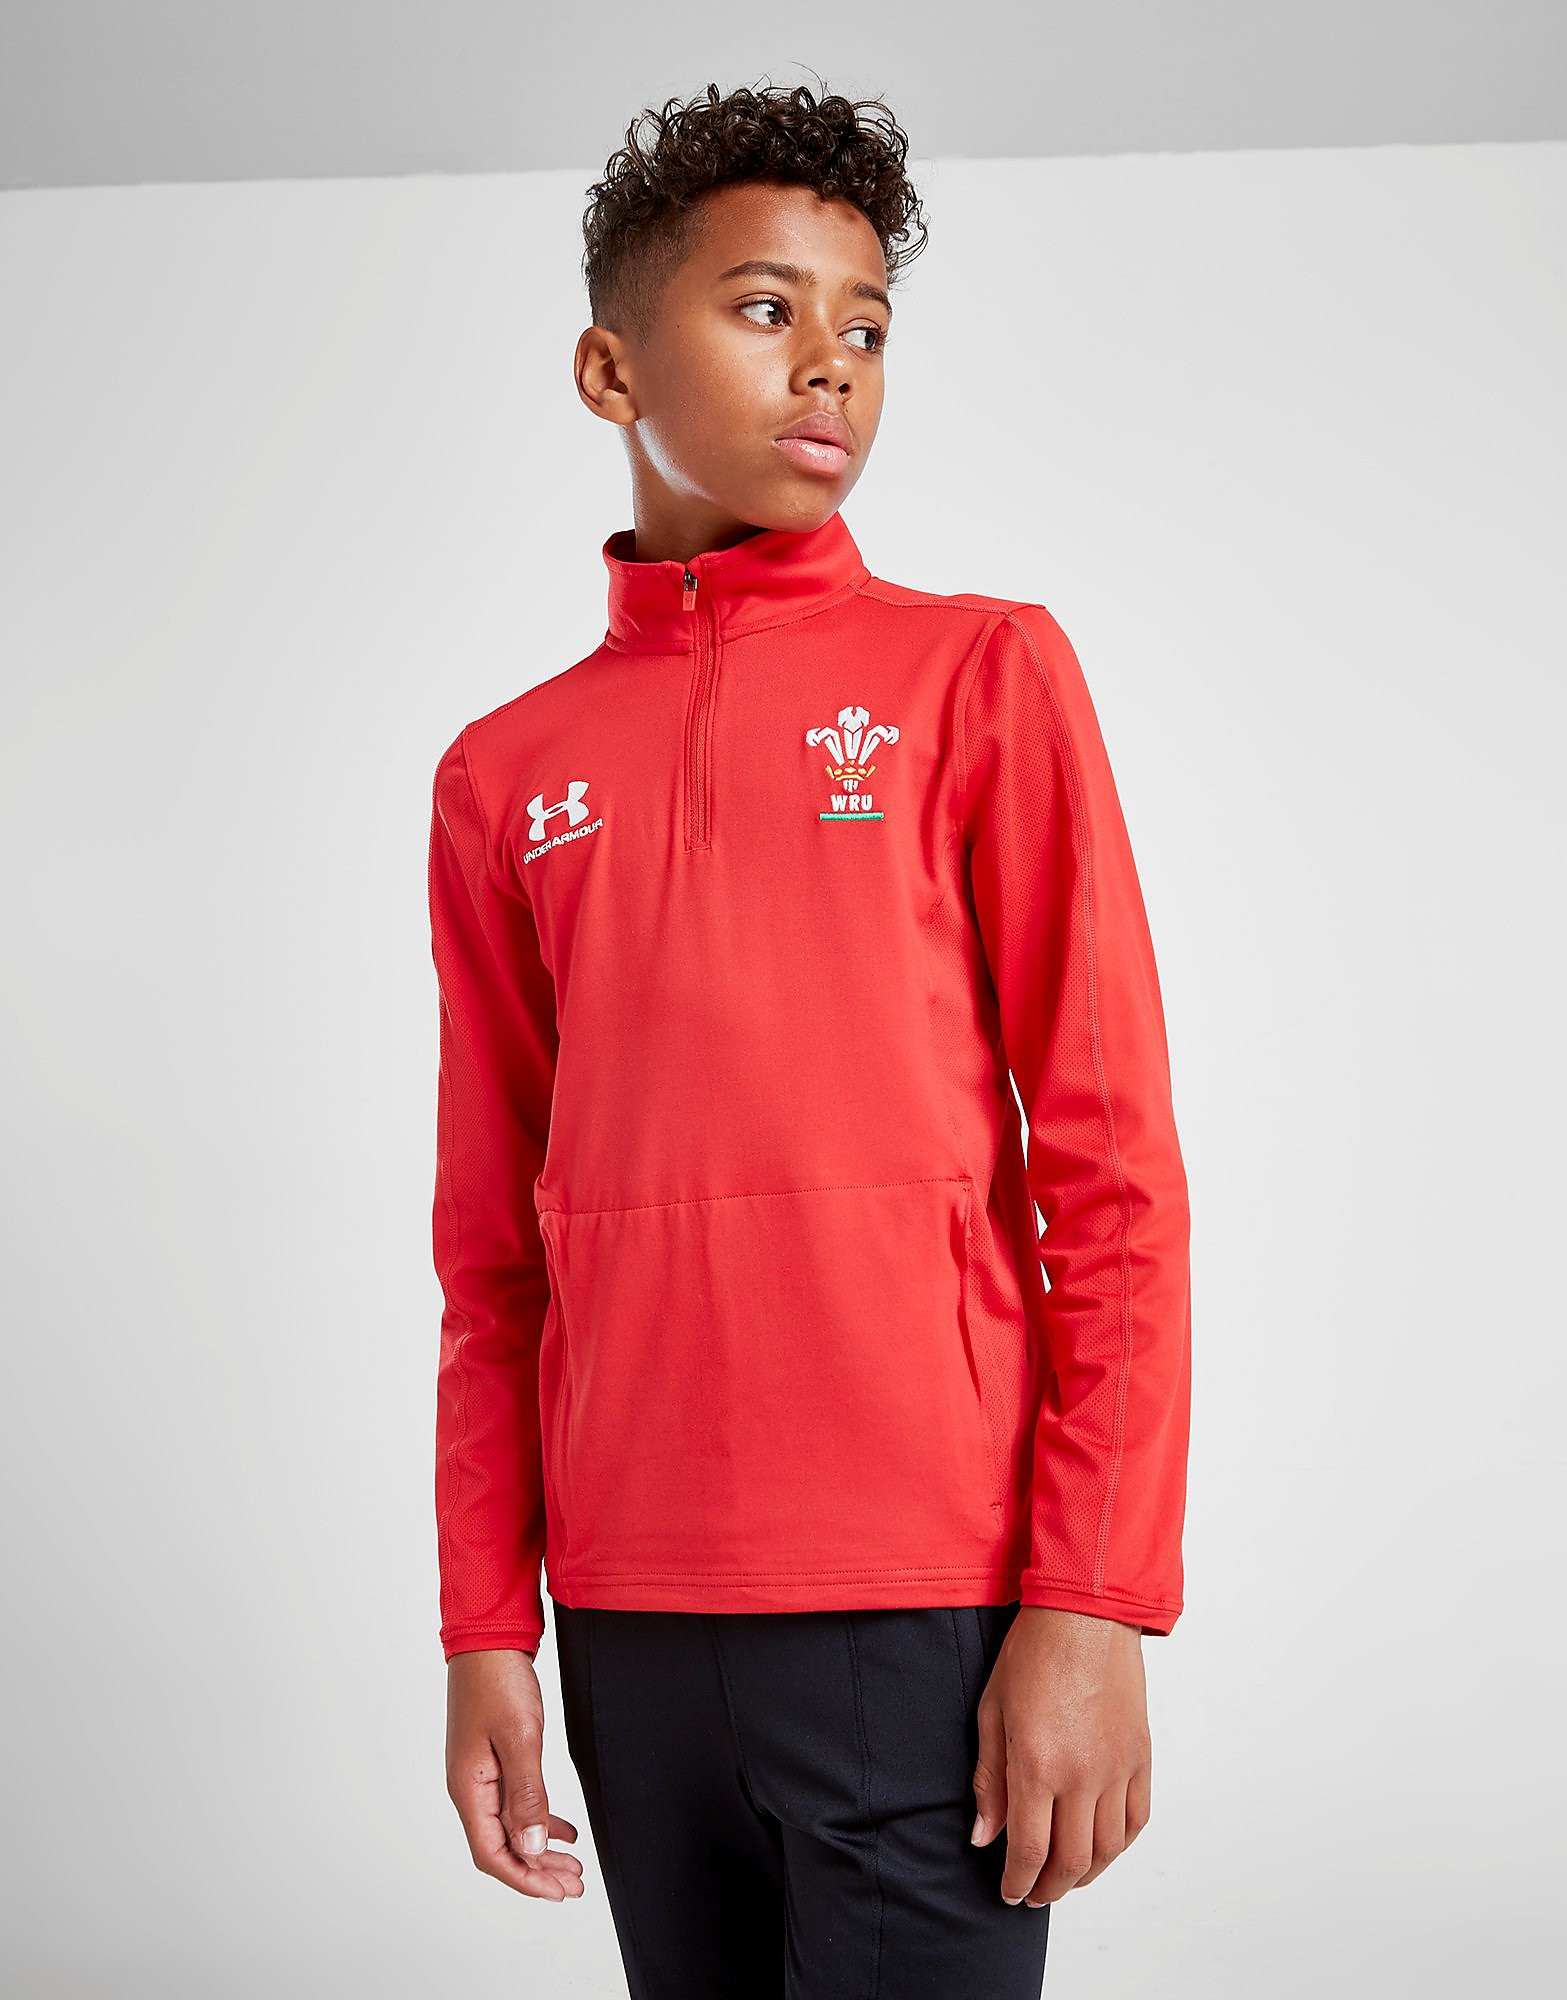 Under Armour Wales RU 1/4 Zip Track Top Junior Rood Kind